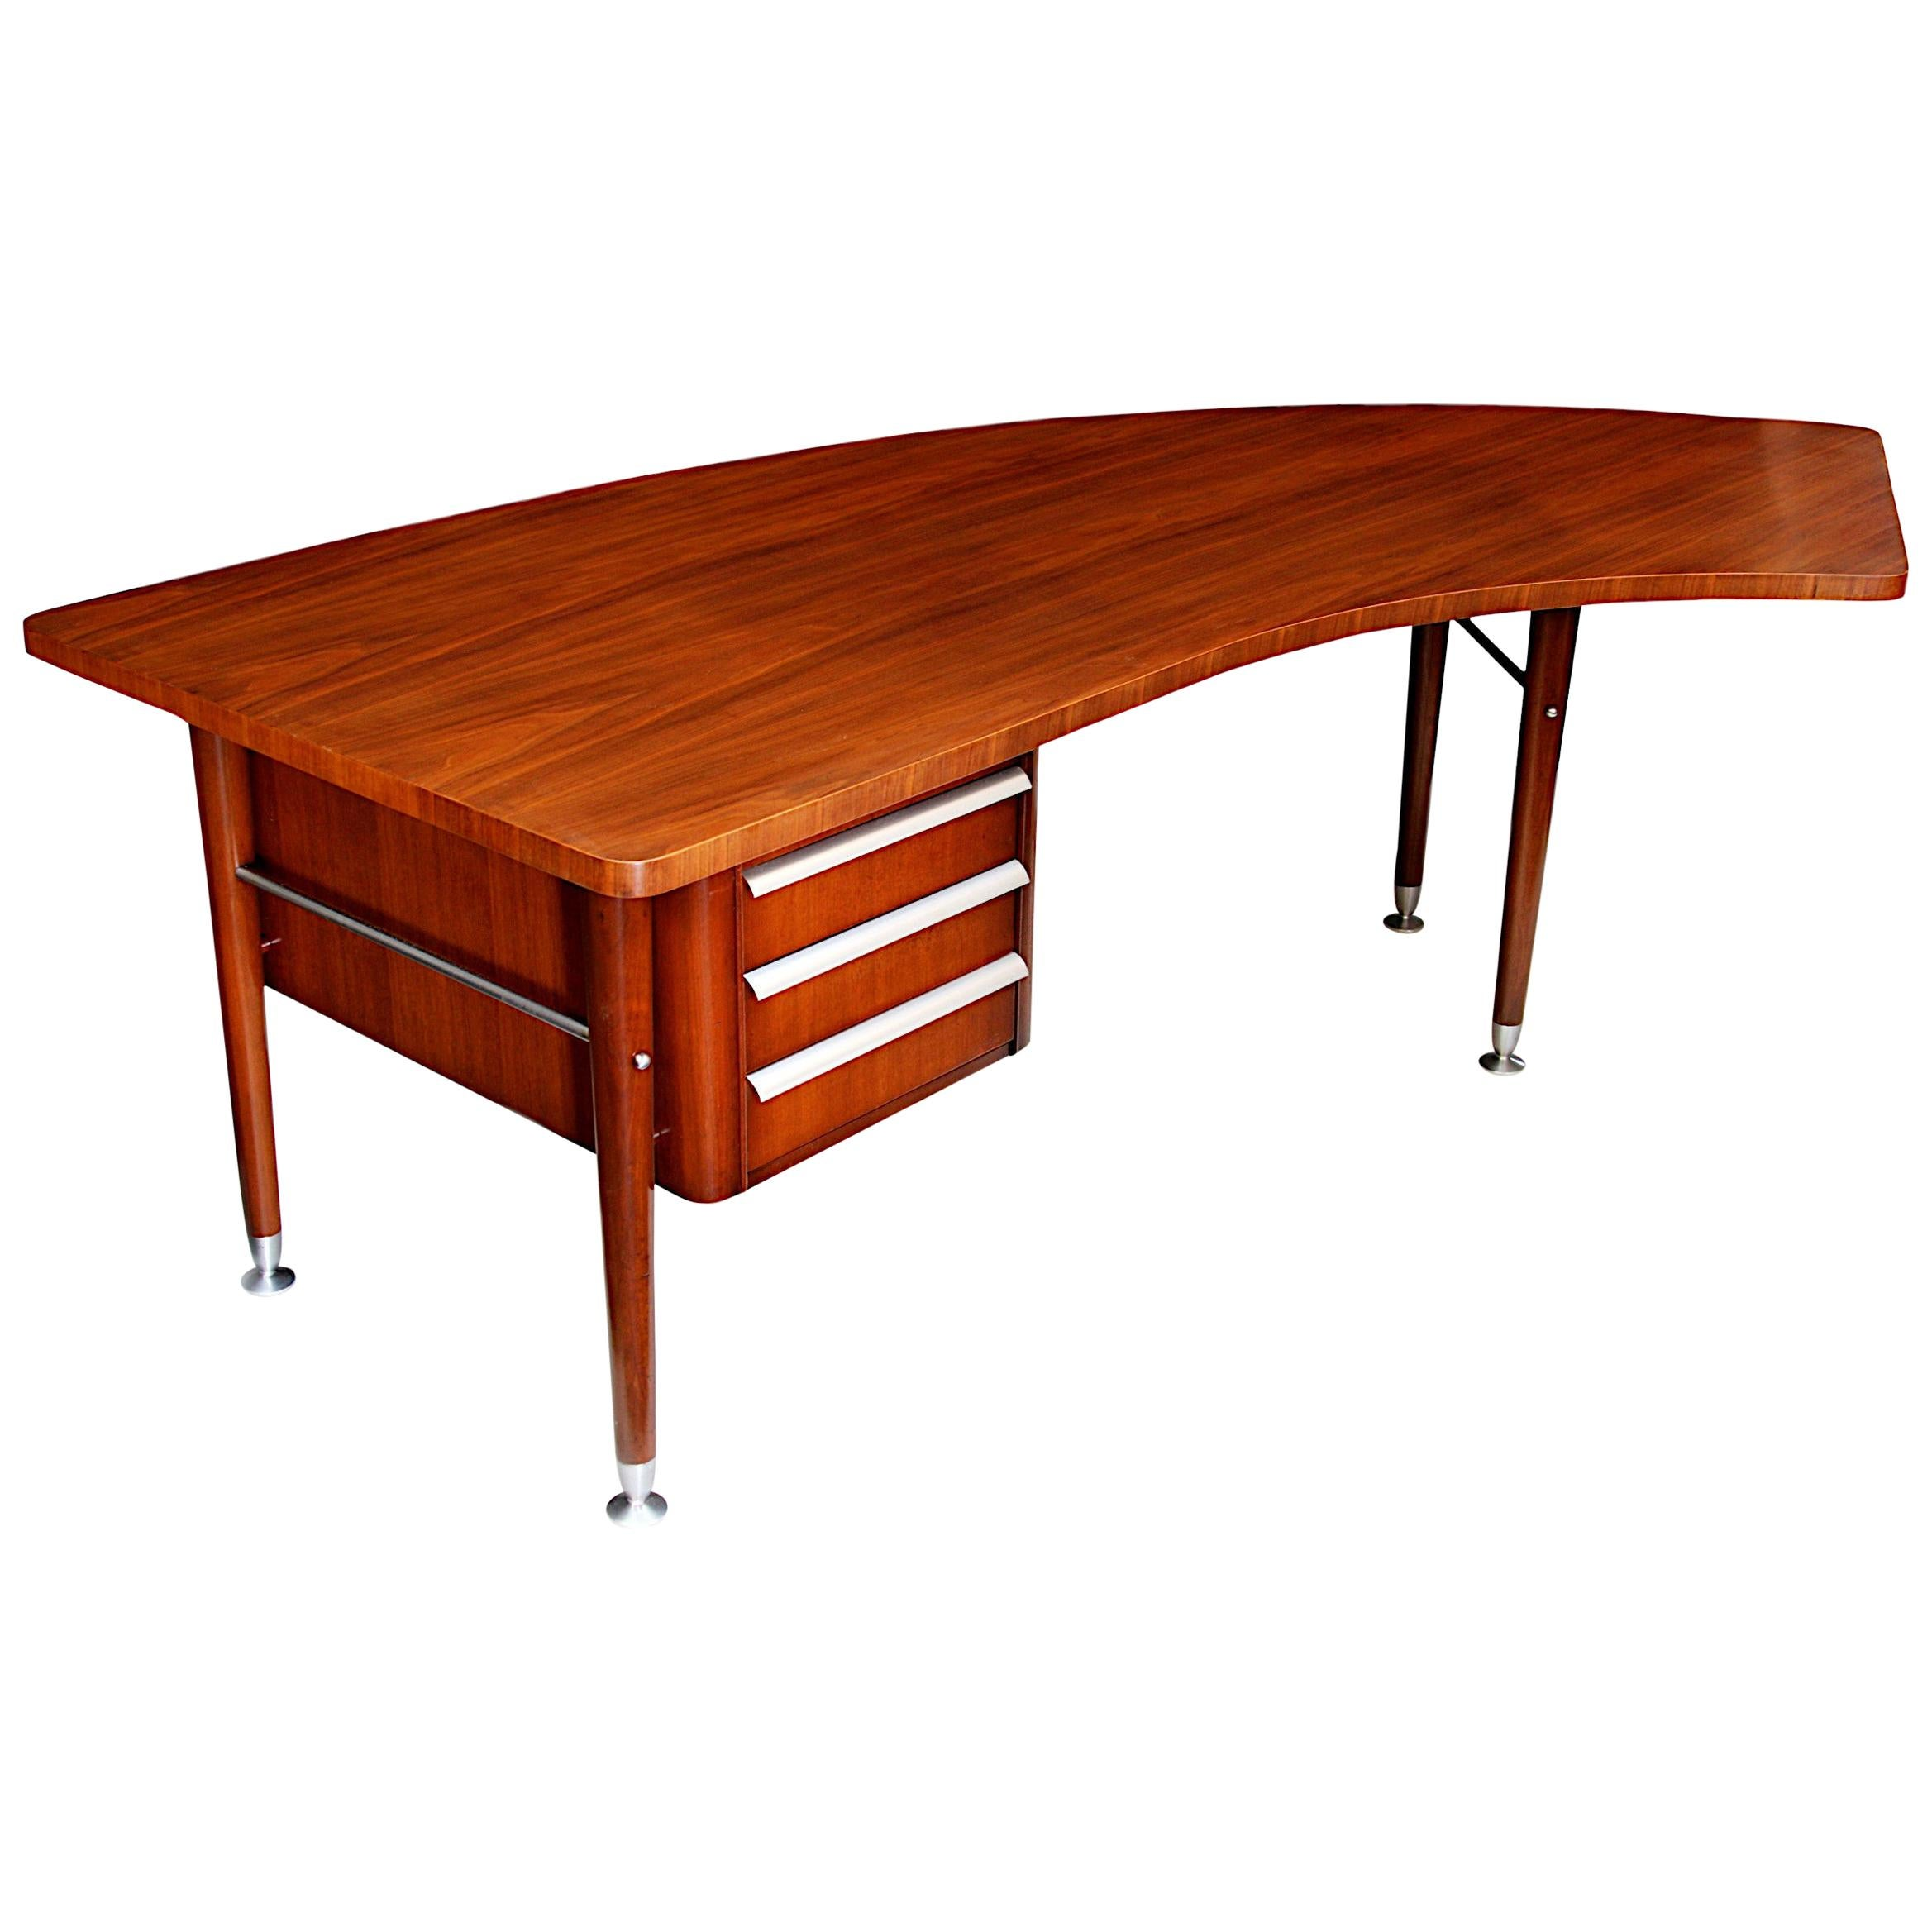 1950s Mid-Century Modern Sigma Series Boomerang Executive Desk by Stow Davis